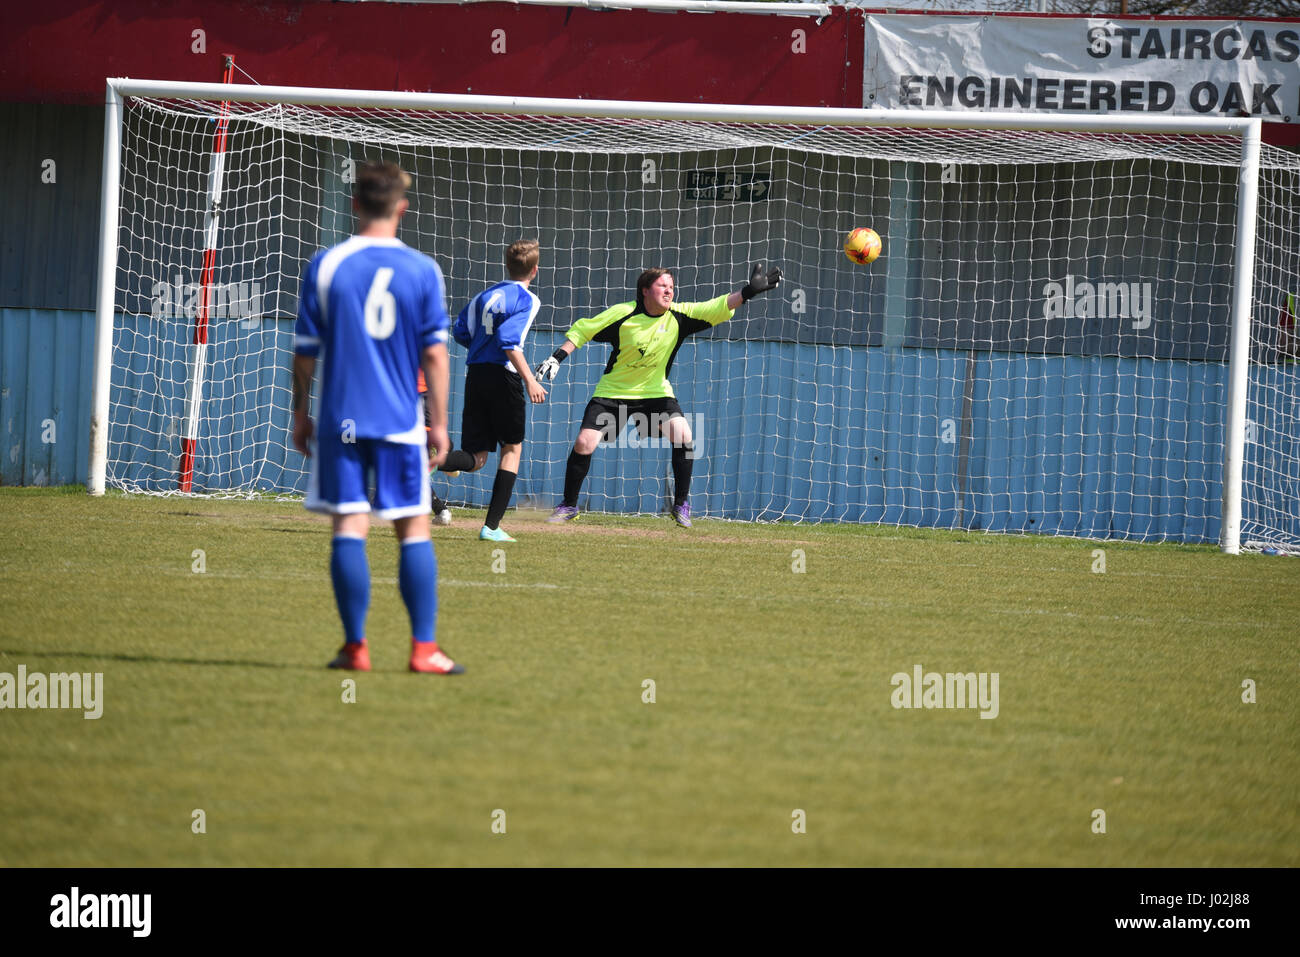 Paul Manners letting in a soft goal in a charity football match - Stock Image